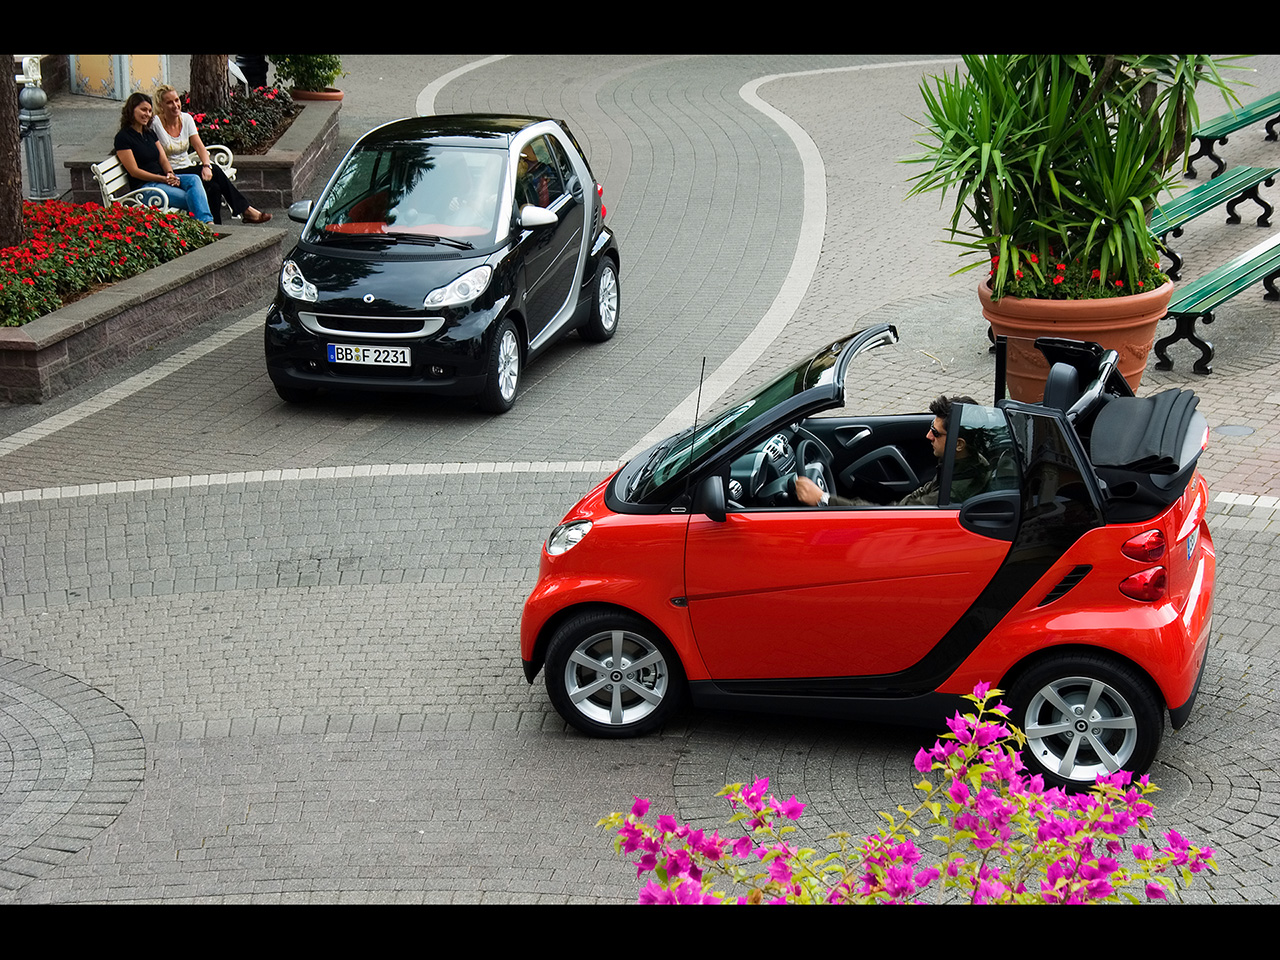 smart fortwo cabrio edition red technical details history photos on better parts ltd. Black Bedroom Furniture Sets. Home Design Ideas